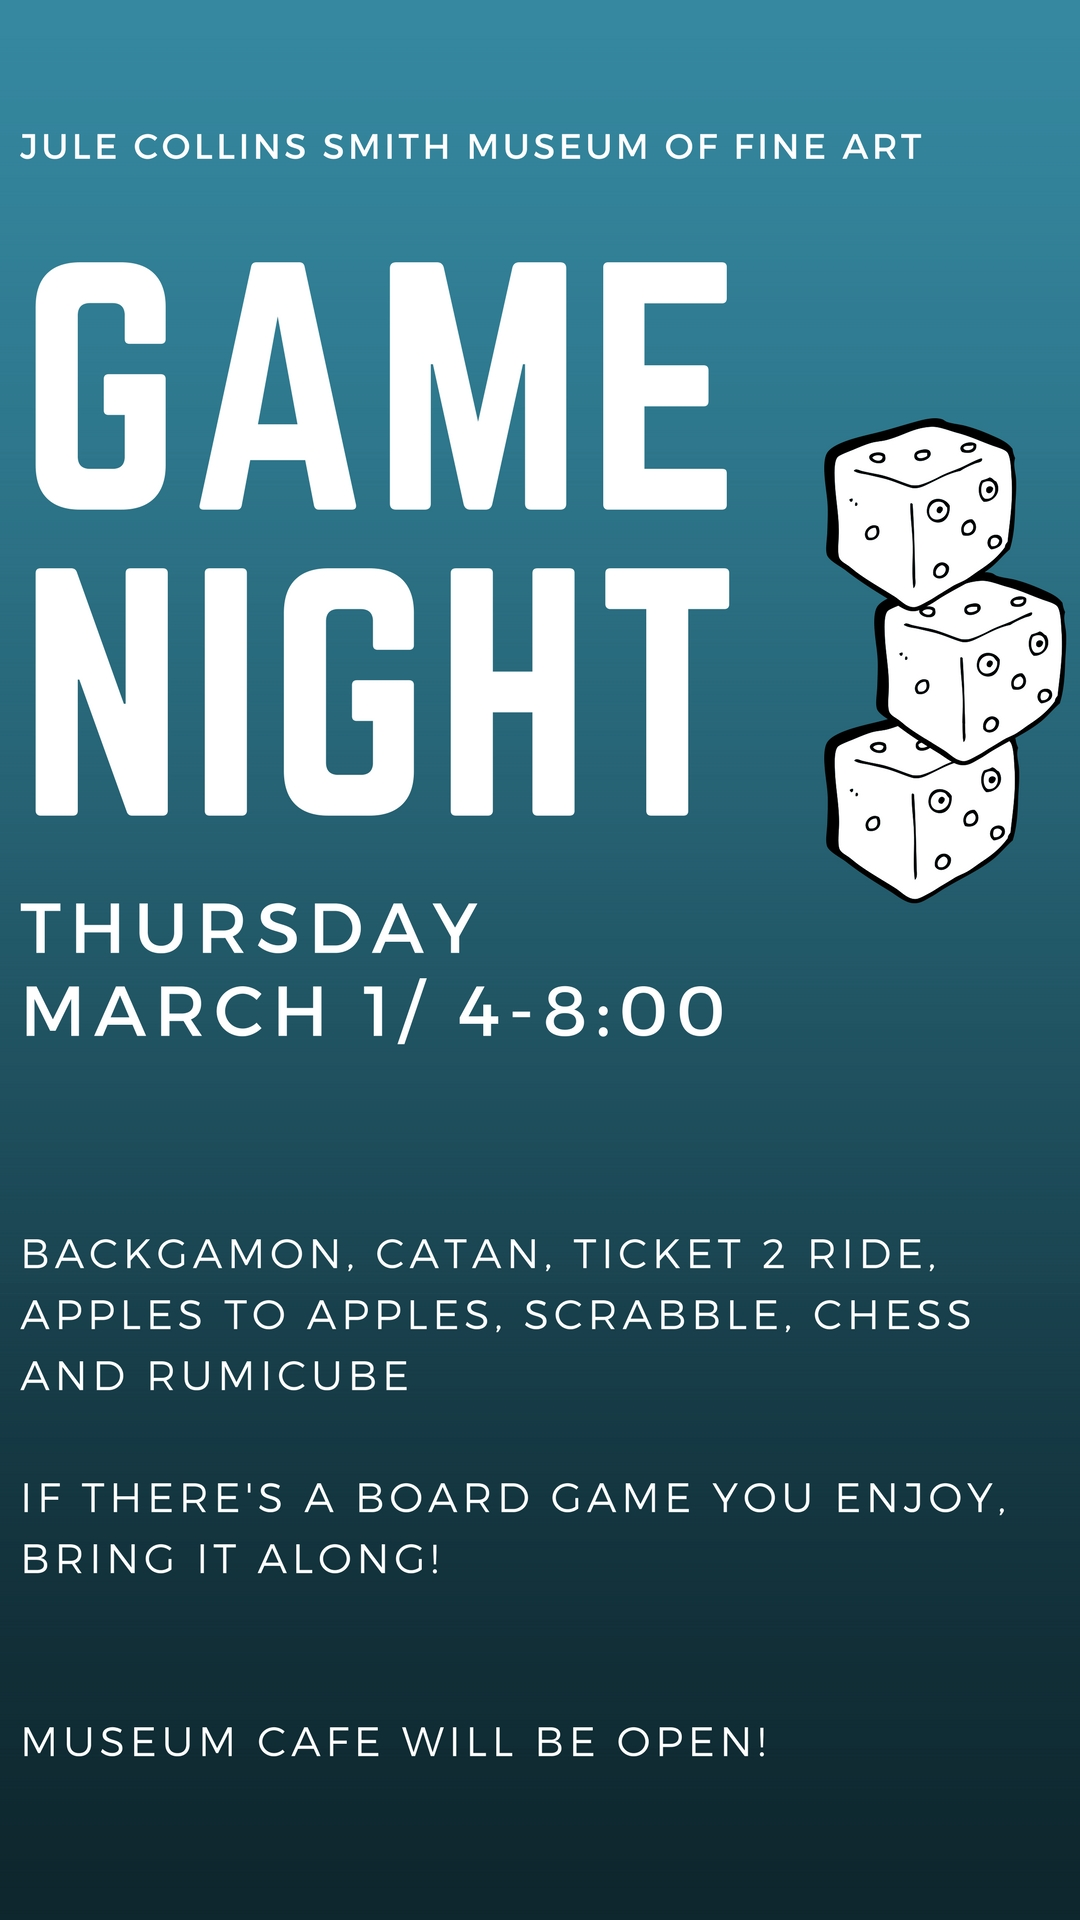 Promotional graphic for Game Night on Thursday, March 1, 2018 at 4 p.m.